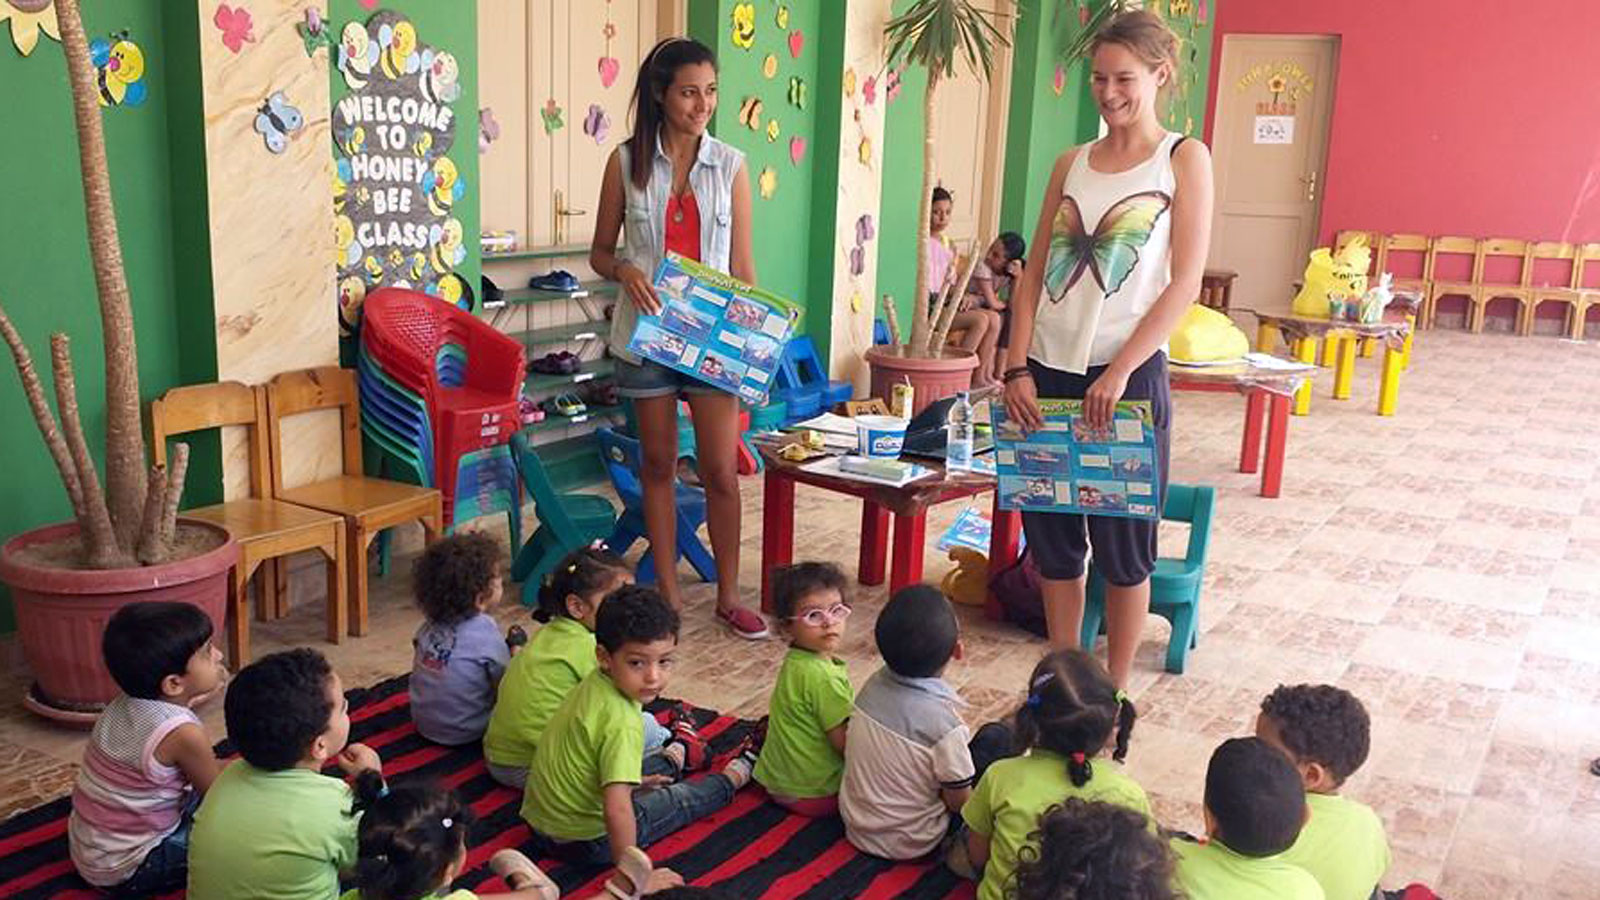 Vortrag im Kindergarten Honey Bee in El Gouna